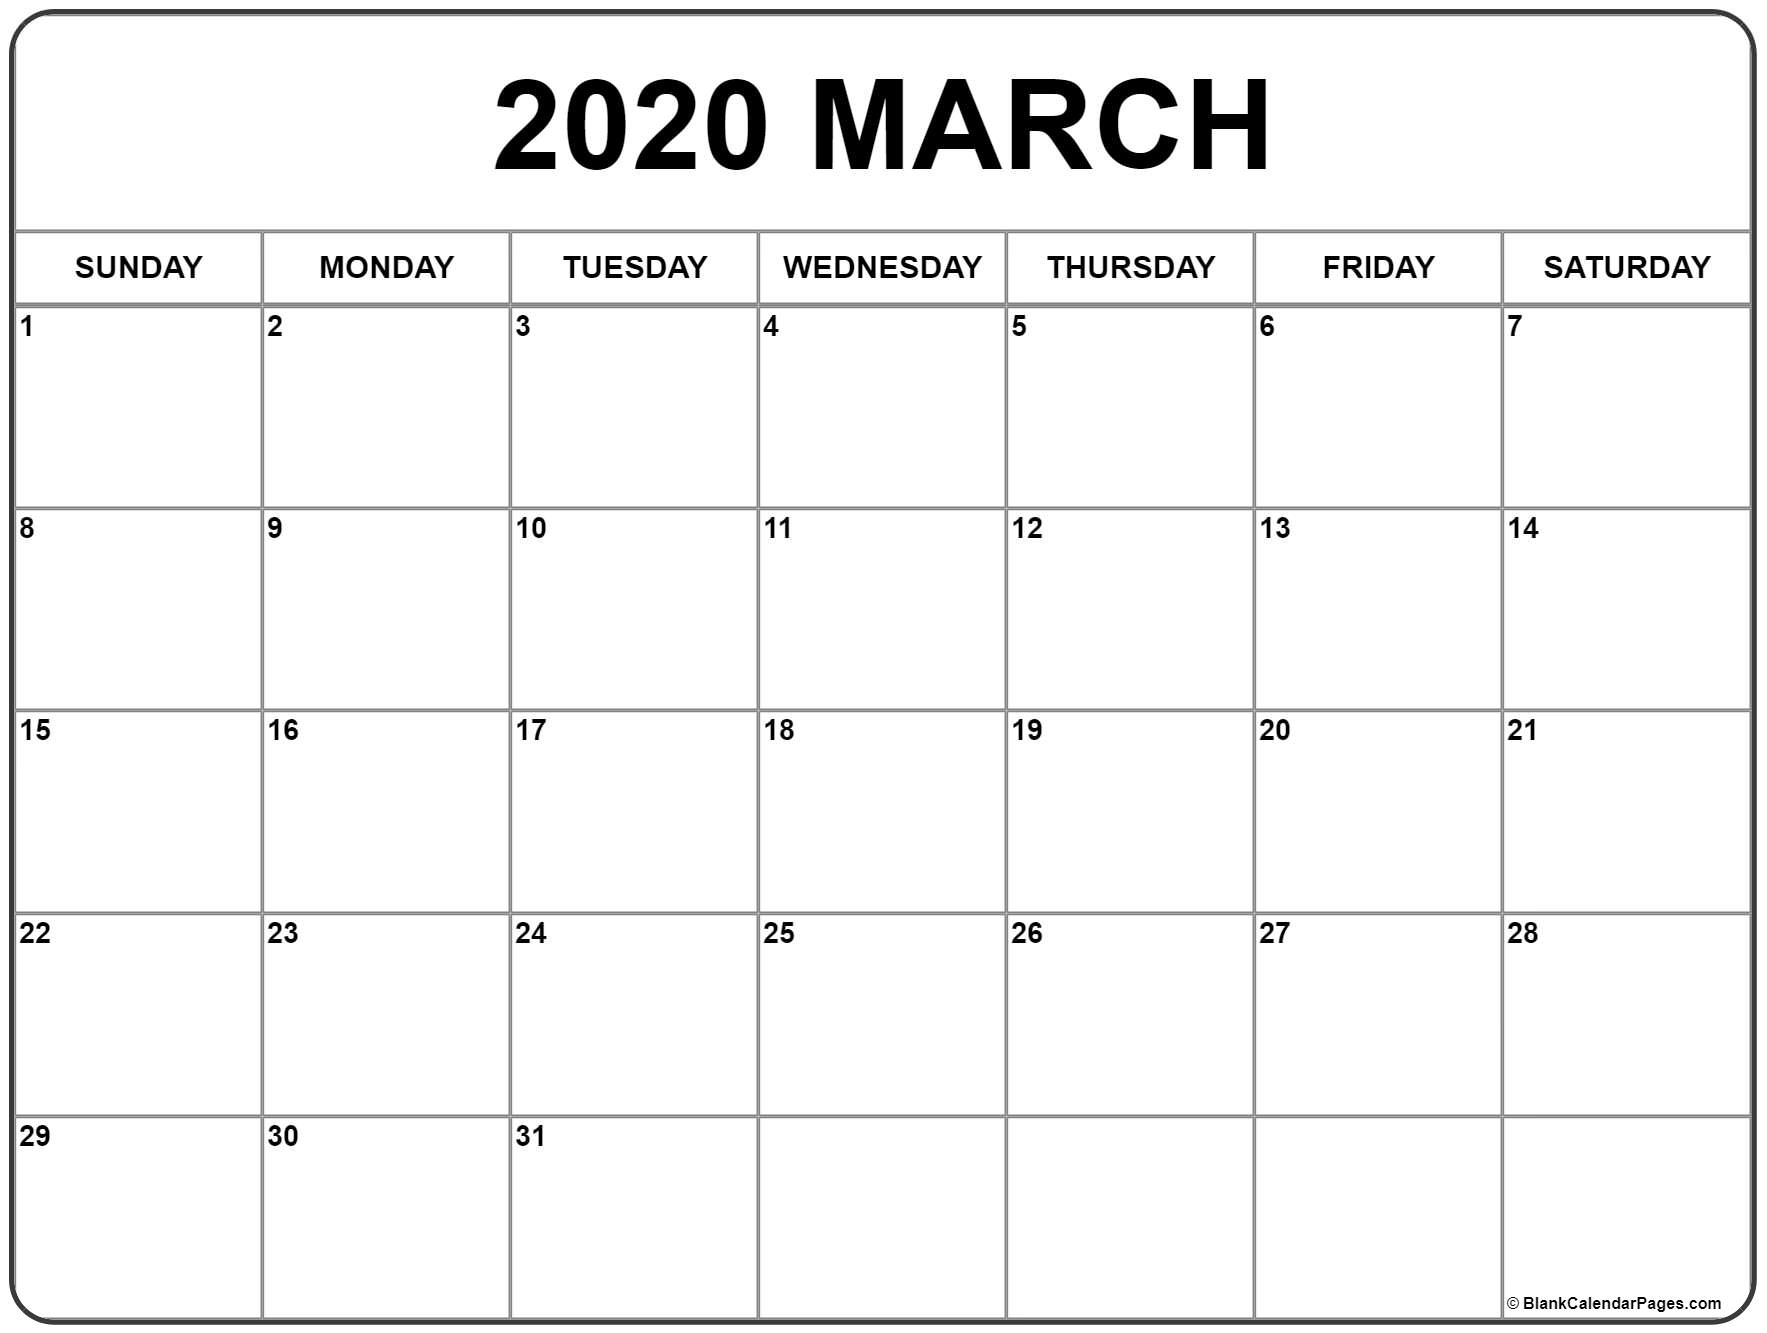 March 2020 Calendar | Free Printable Monthly Calendars for 2020 Calander To Write On